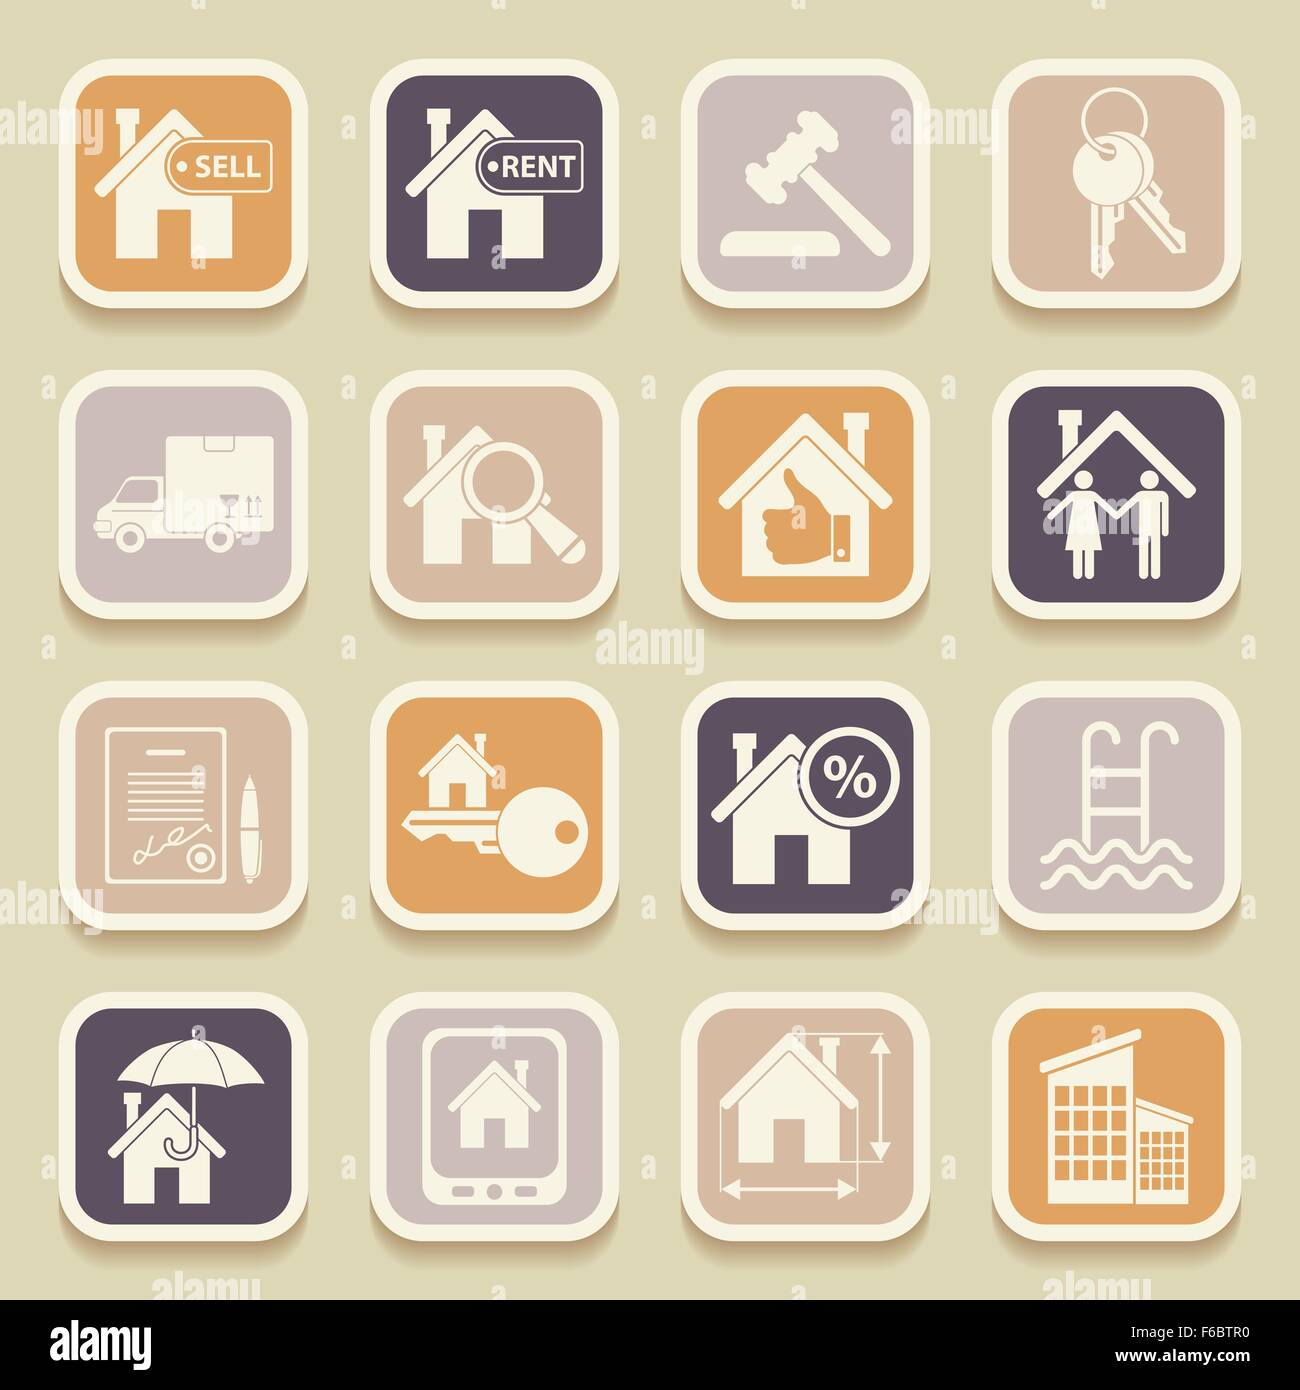 Real estate universal icons for web and mobile applications. Vector illustration Stock Vector